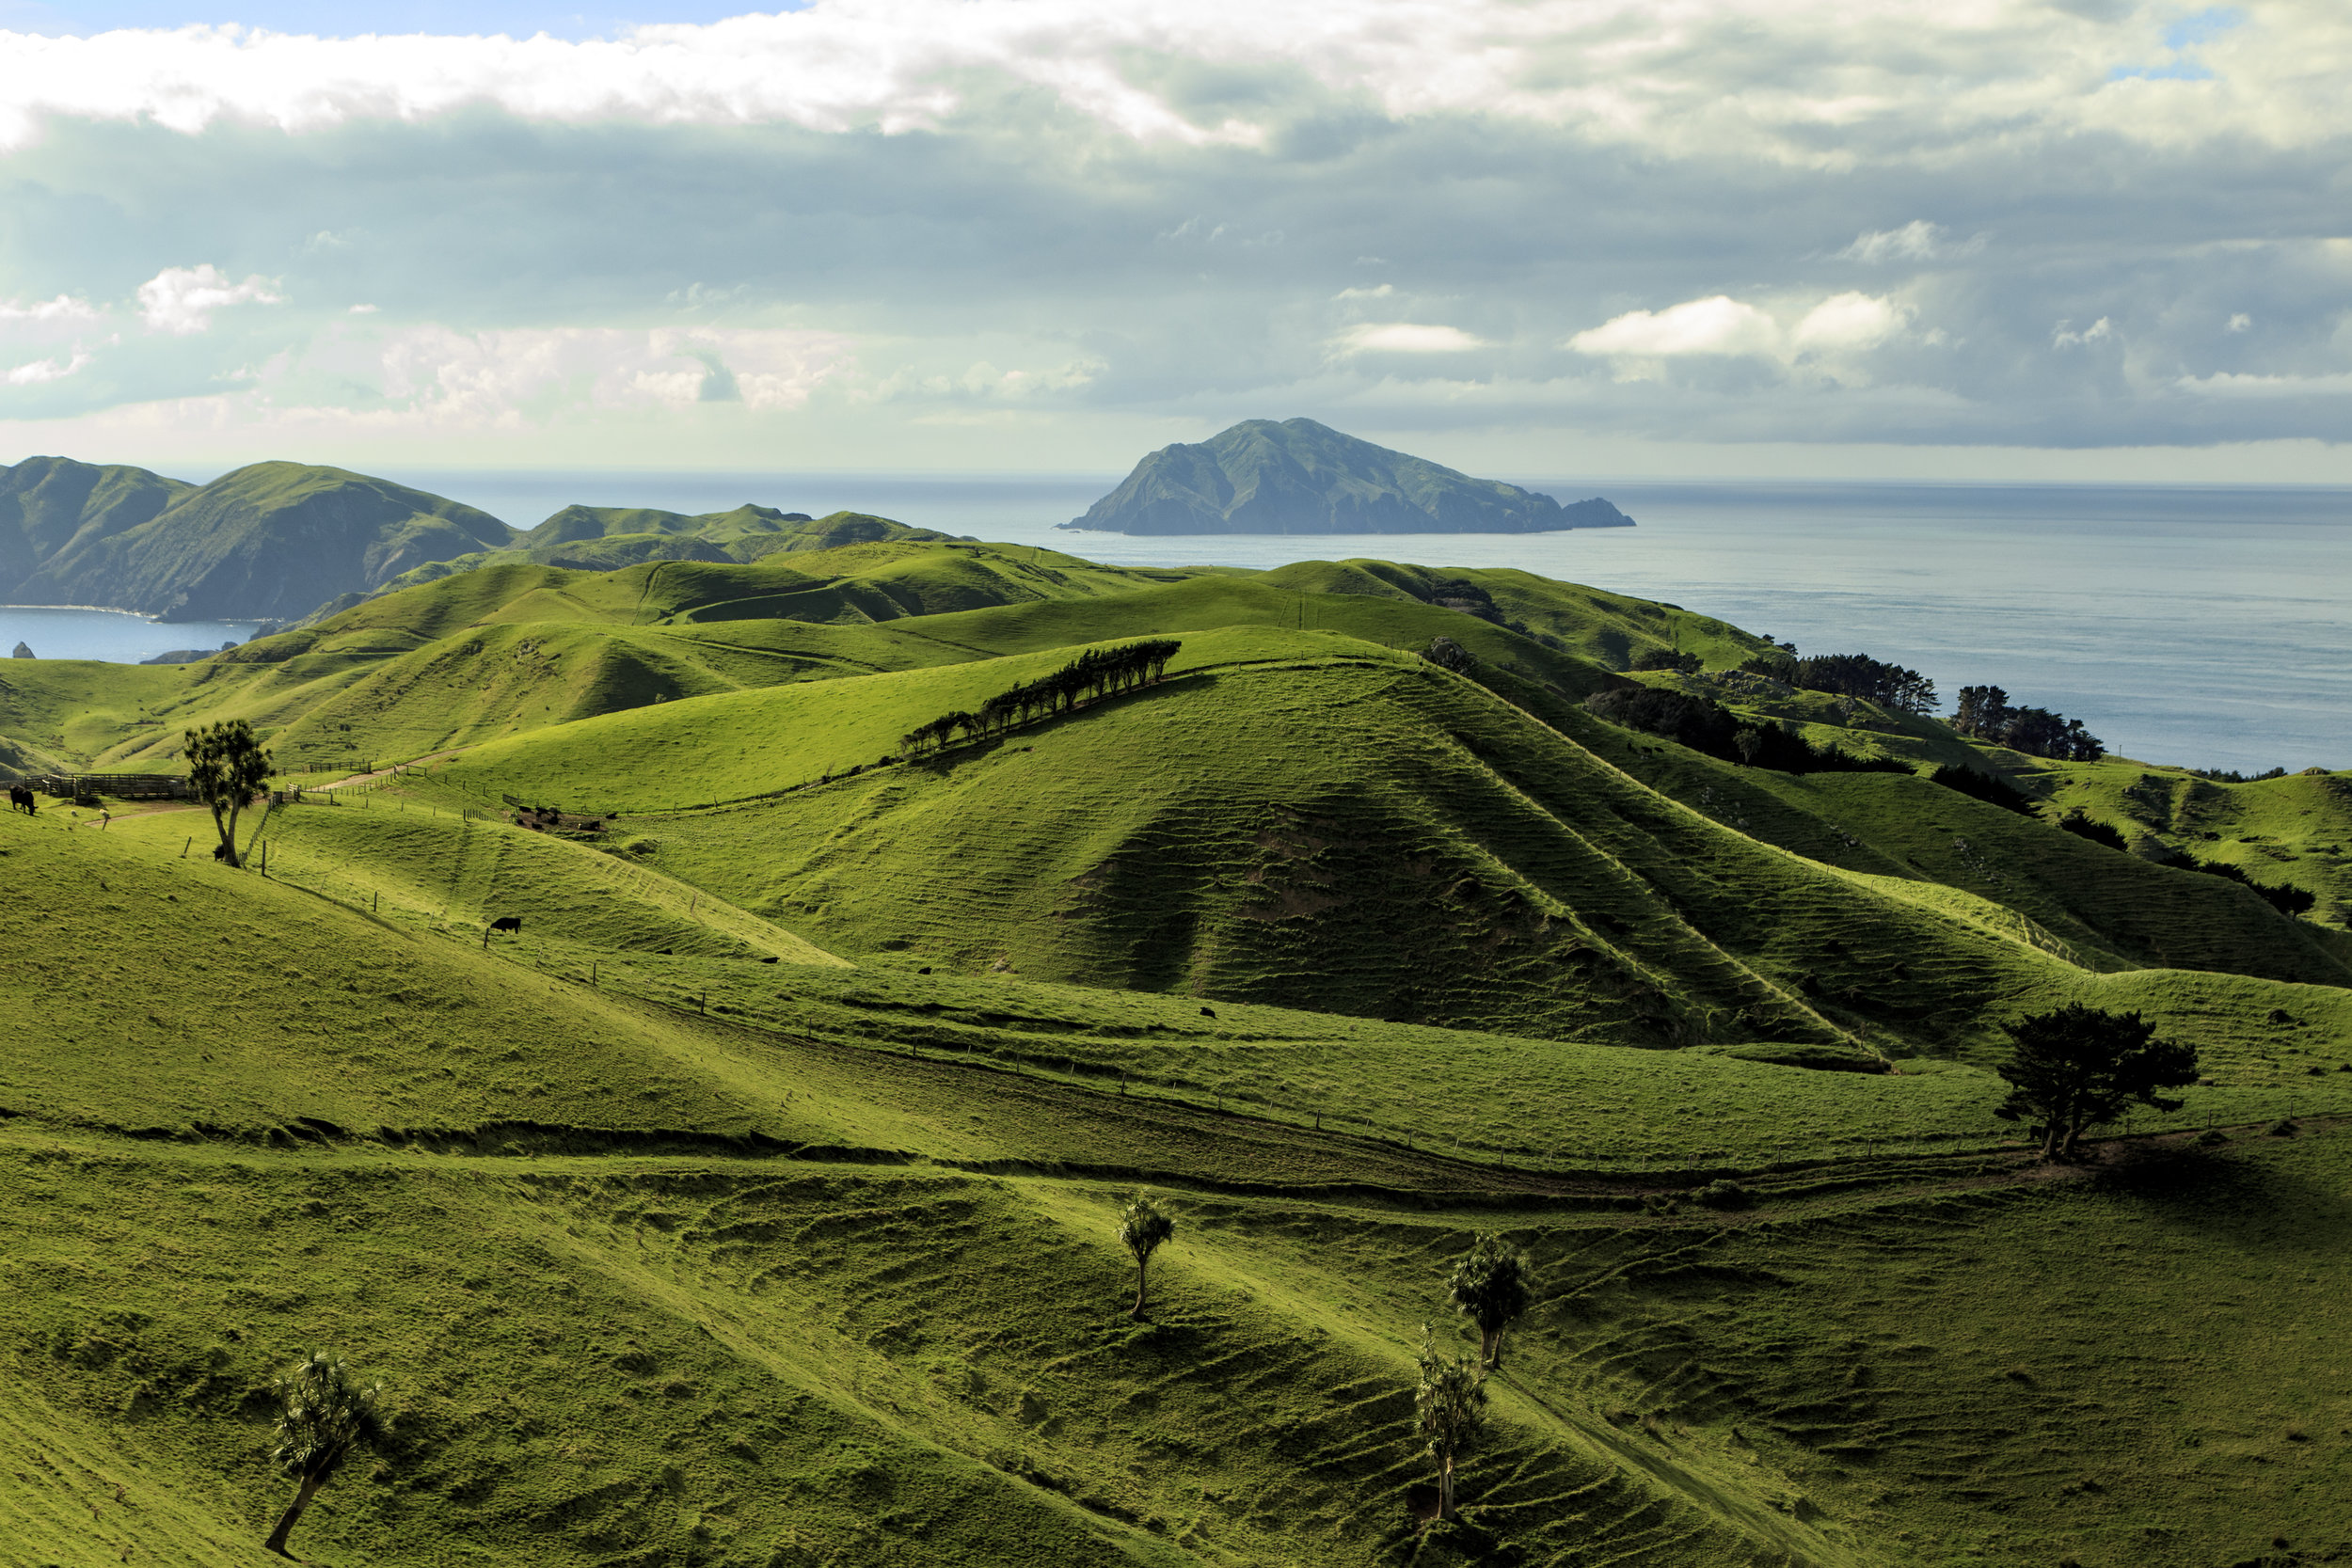 Lush hills and sweeping landscapes